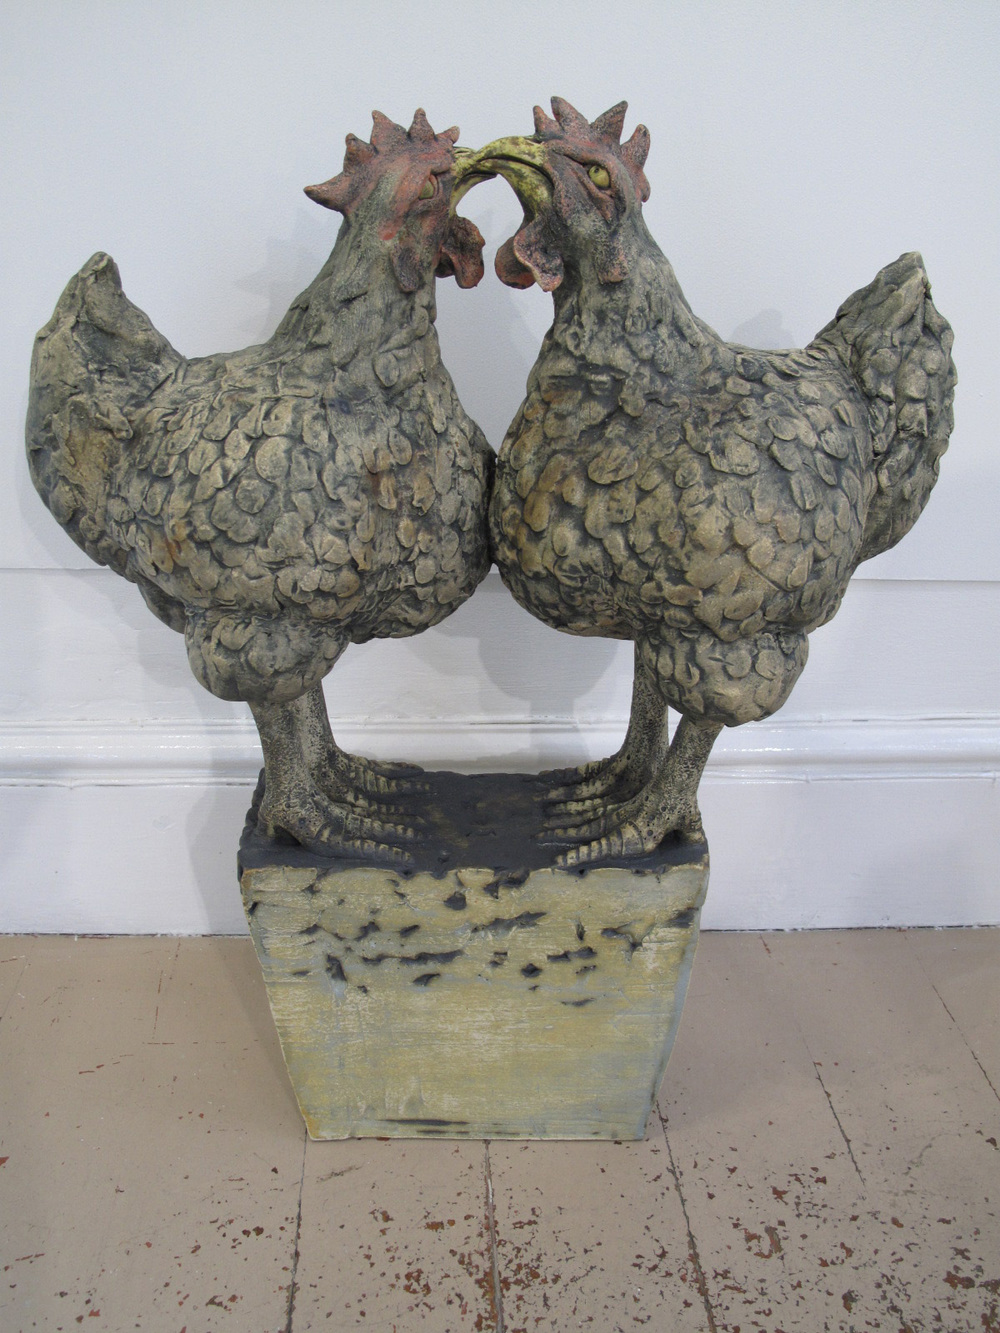 Two Chickens on a Plinth